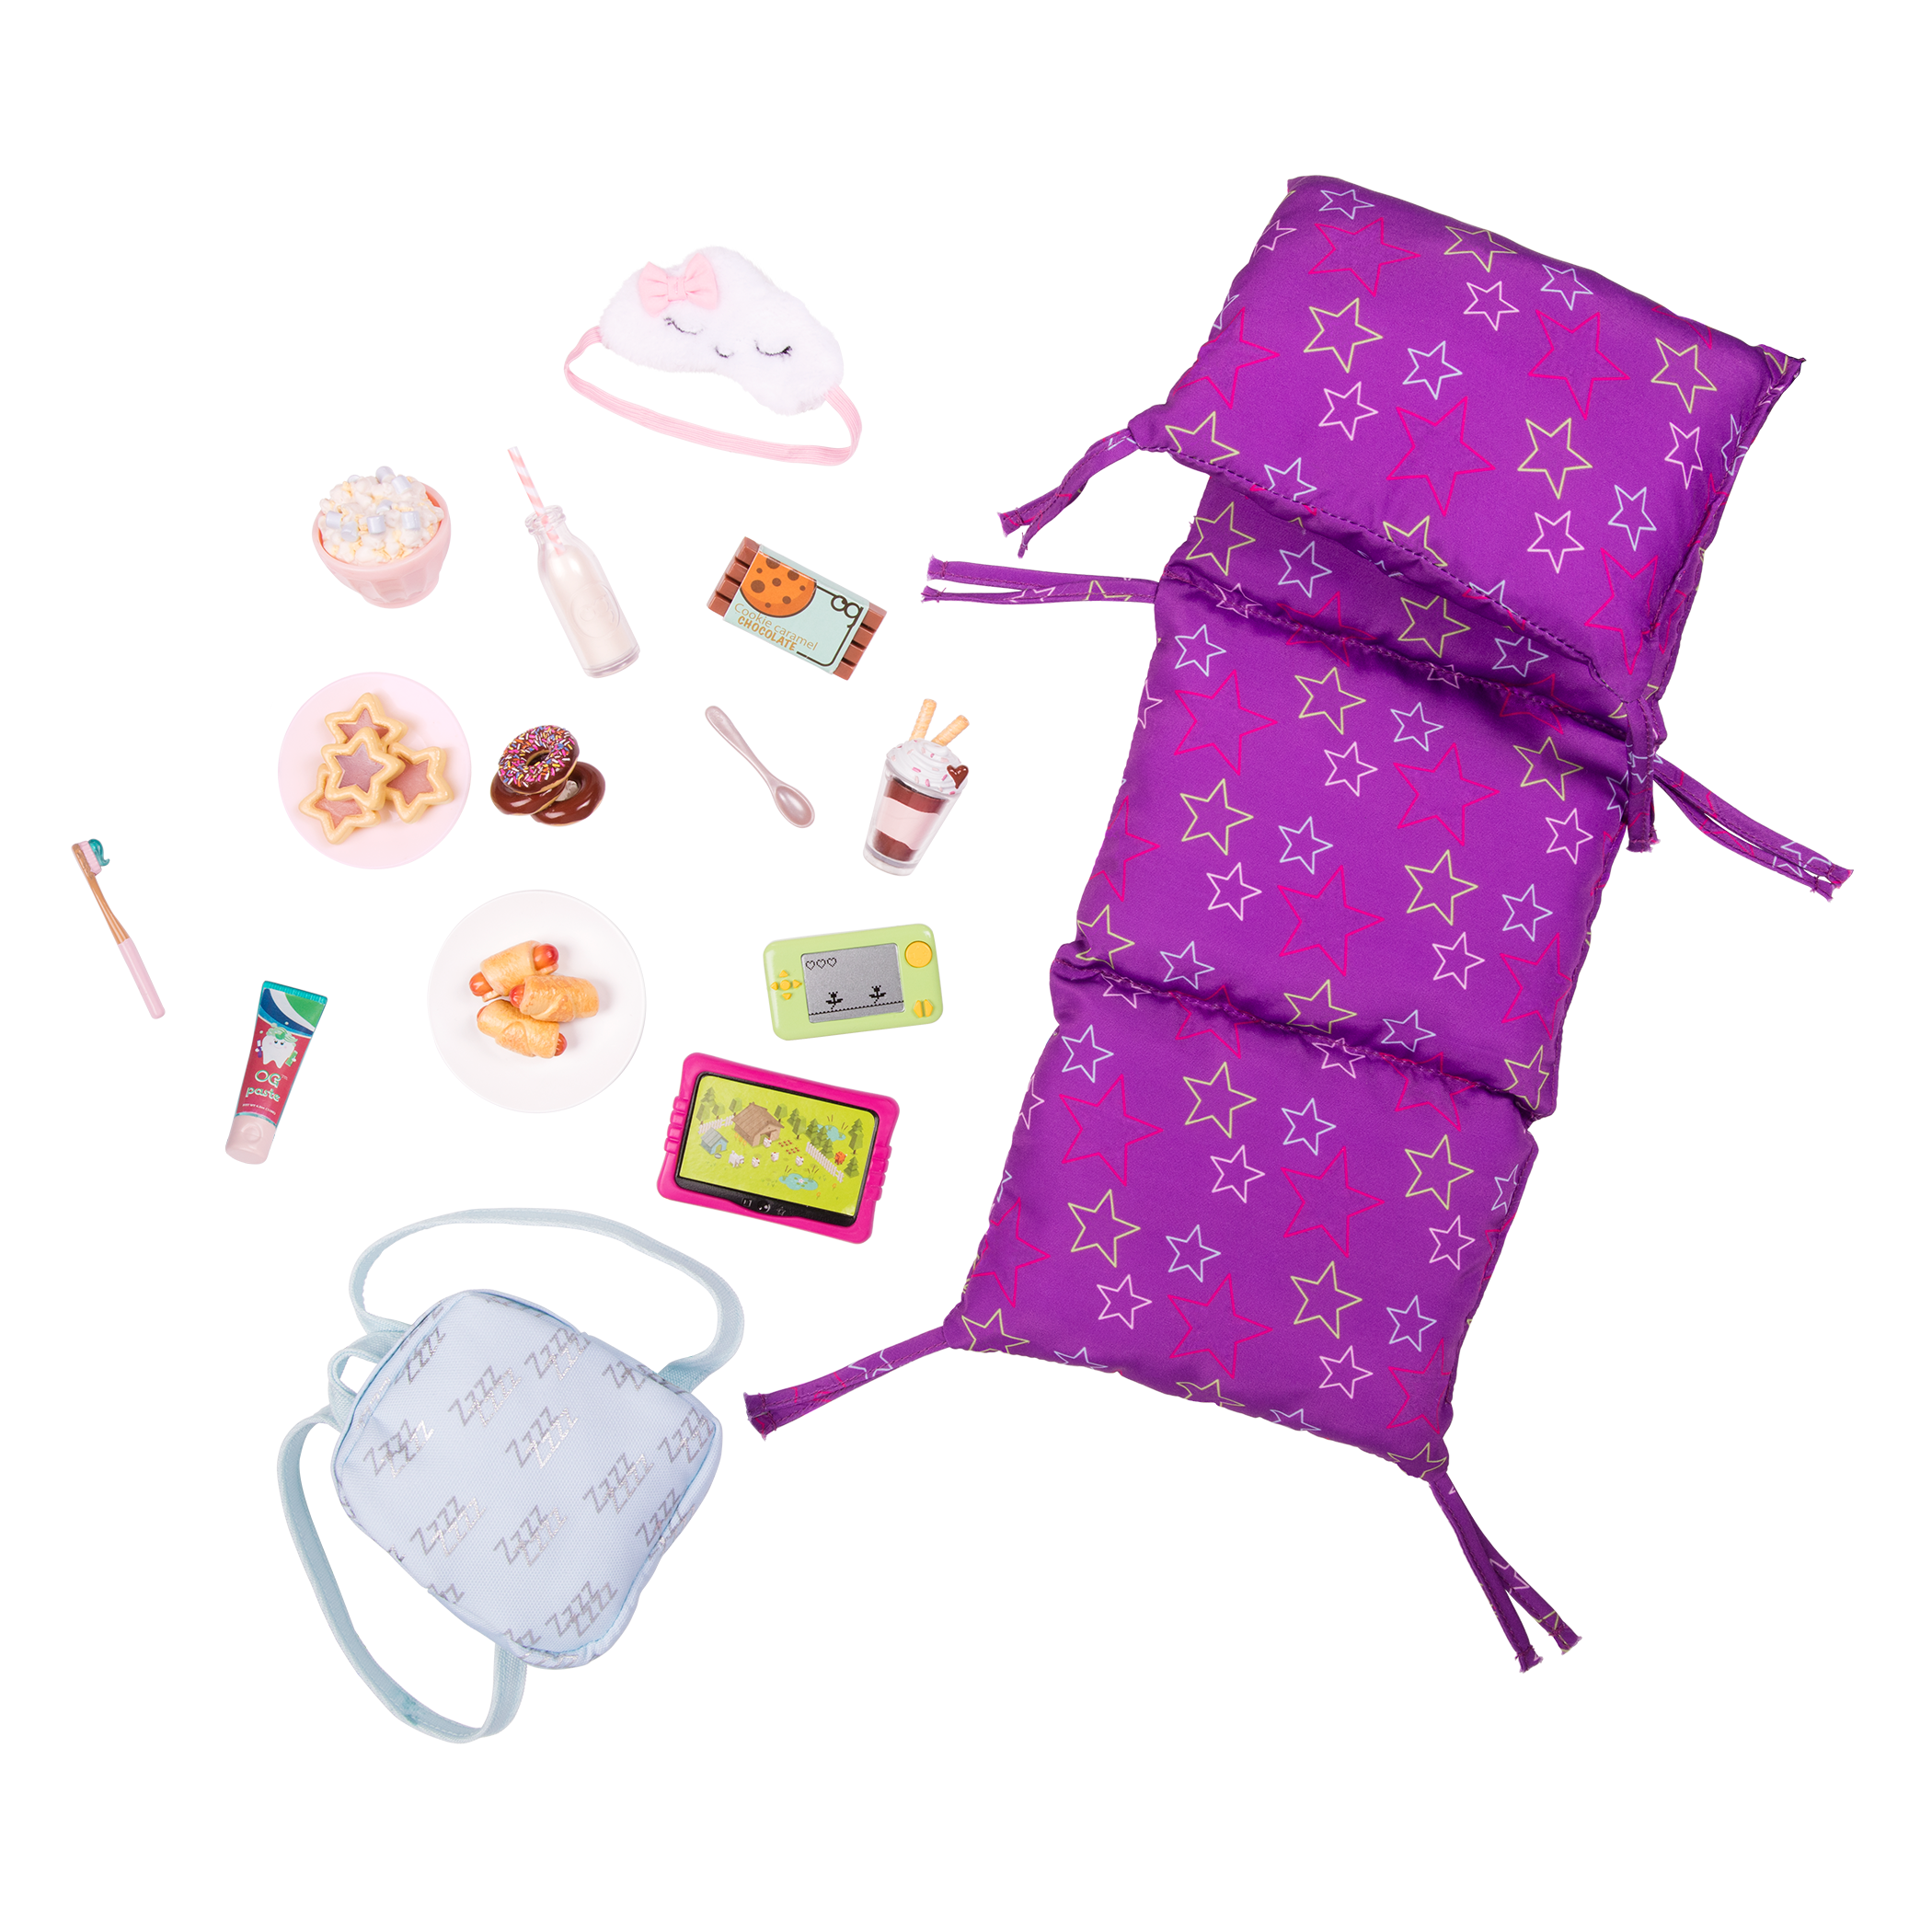 Slumber Delight Sleepover Set for 18-inch Dolls